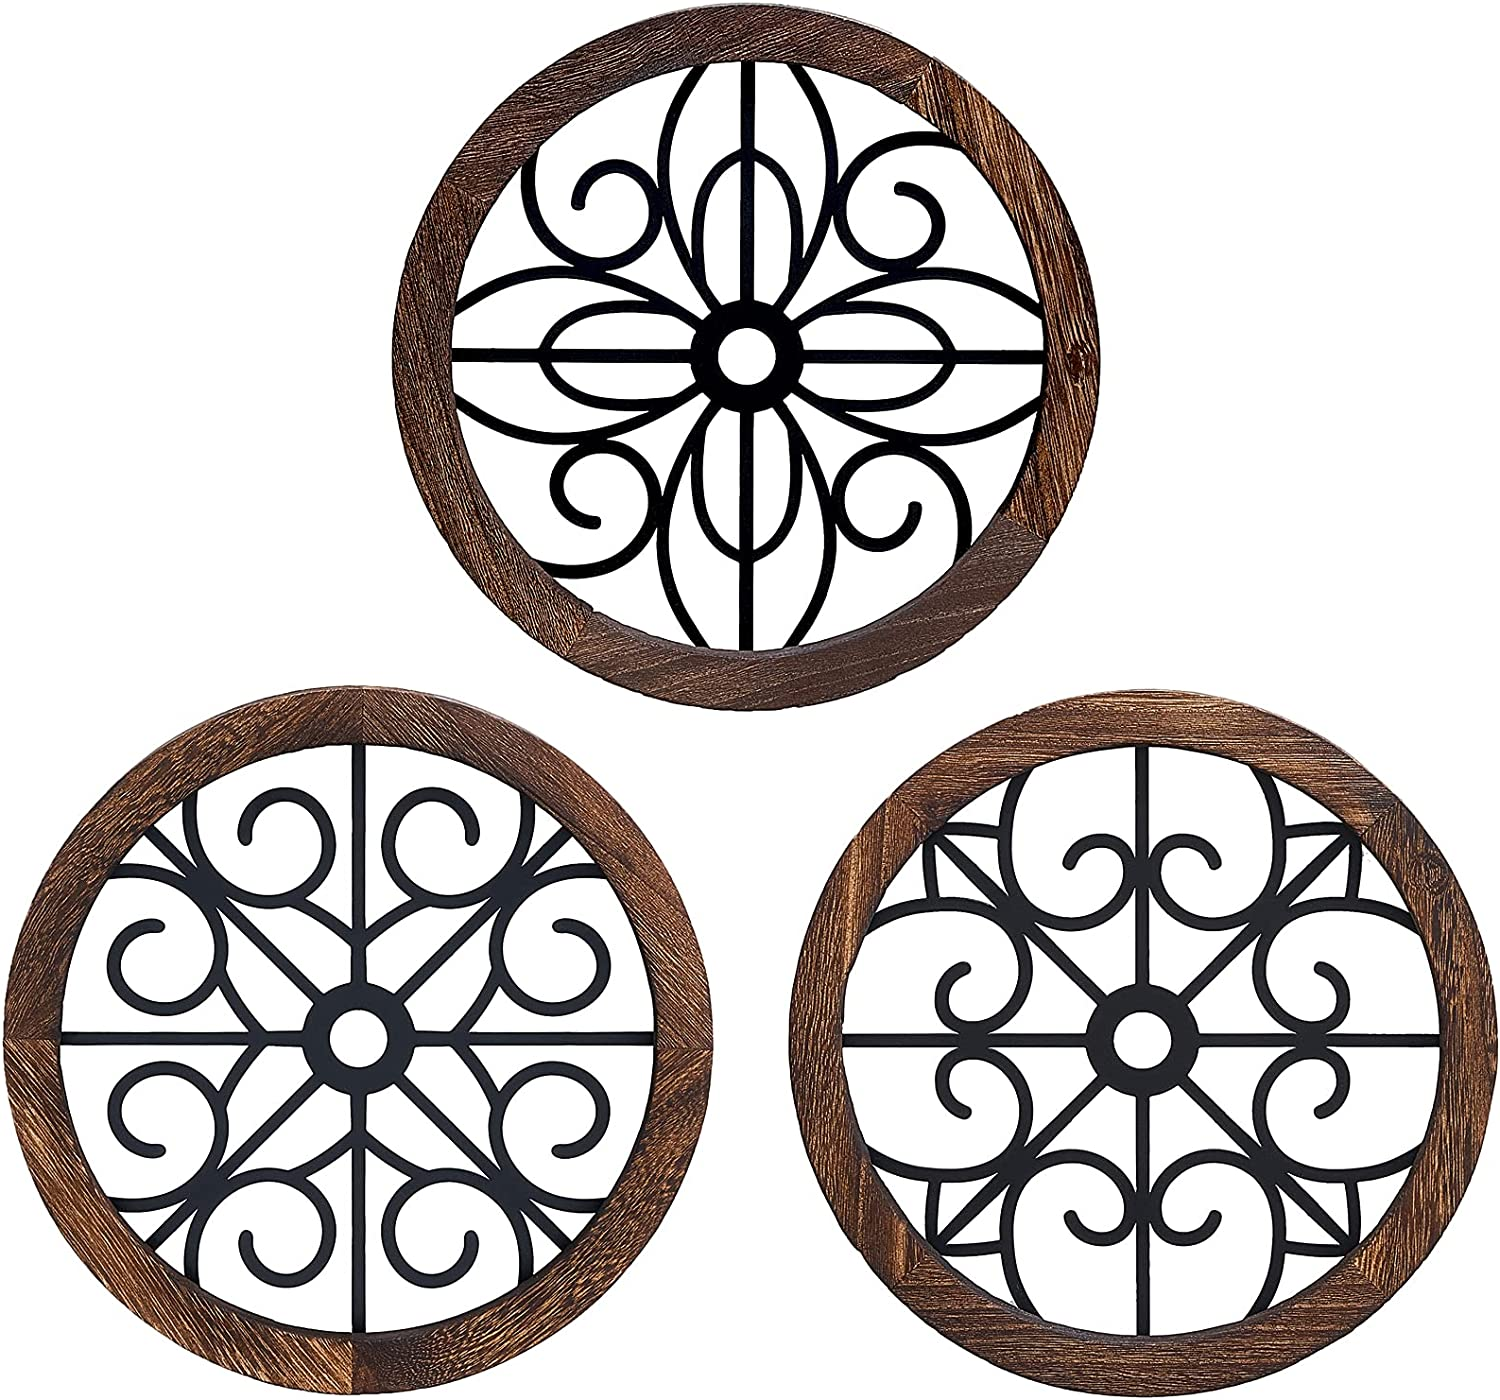 Mkono Small Rustic Wall Decor Round Wall Art Geometric Scrolled Metal with Wooden Frame Farmhouse Hanging Decoration for Home Apartment, Bedroom, Living Room, Dorm, 3 Pack